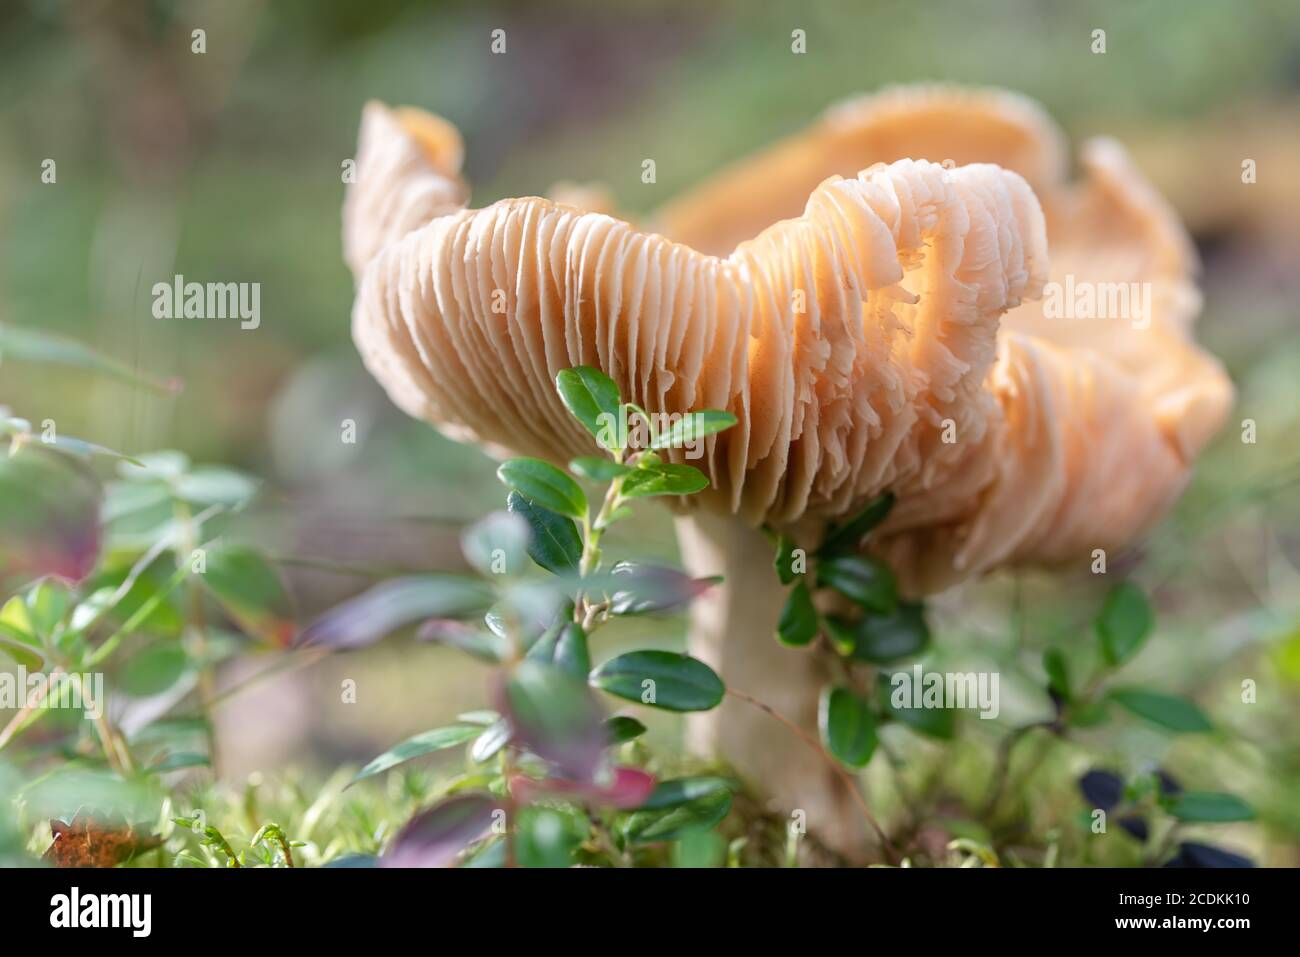 Big old ugly russula mushroom in a green crowberry bushes in the finland forest Stock Photo